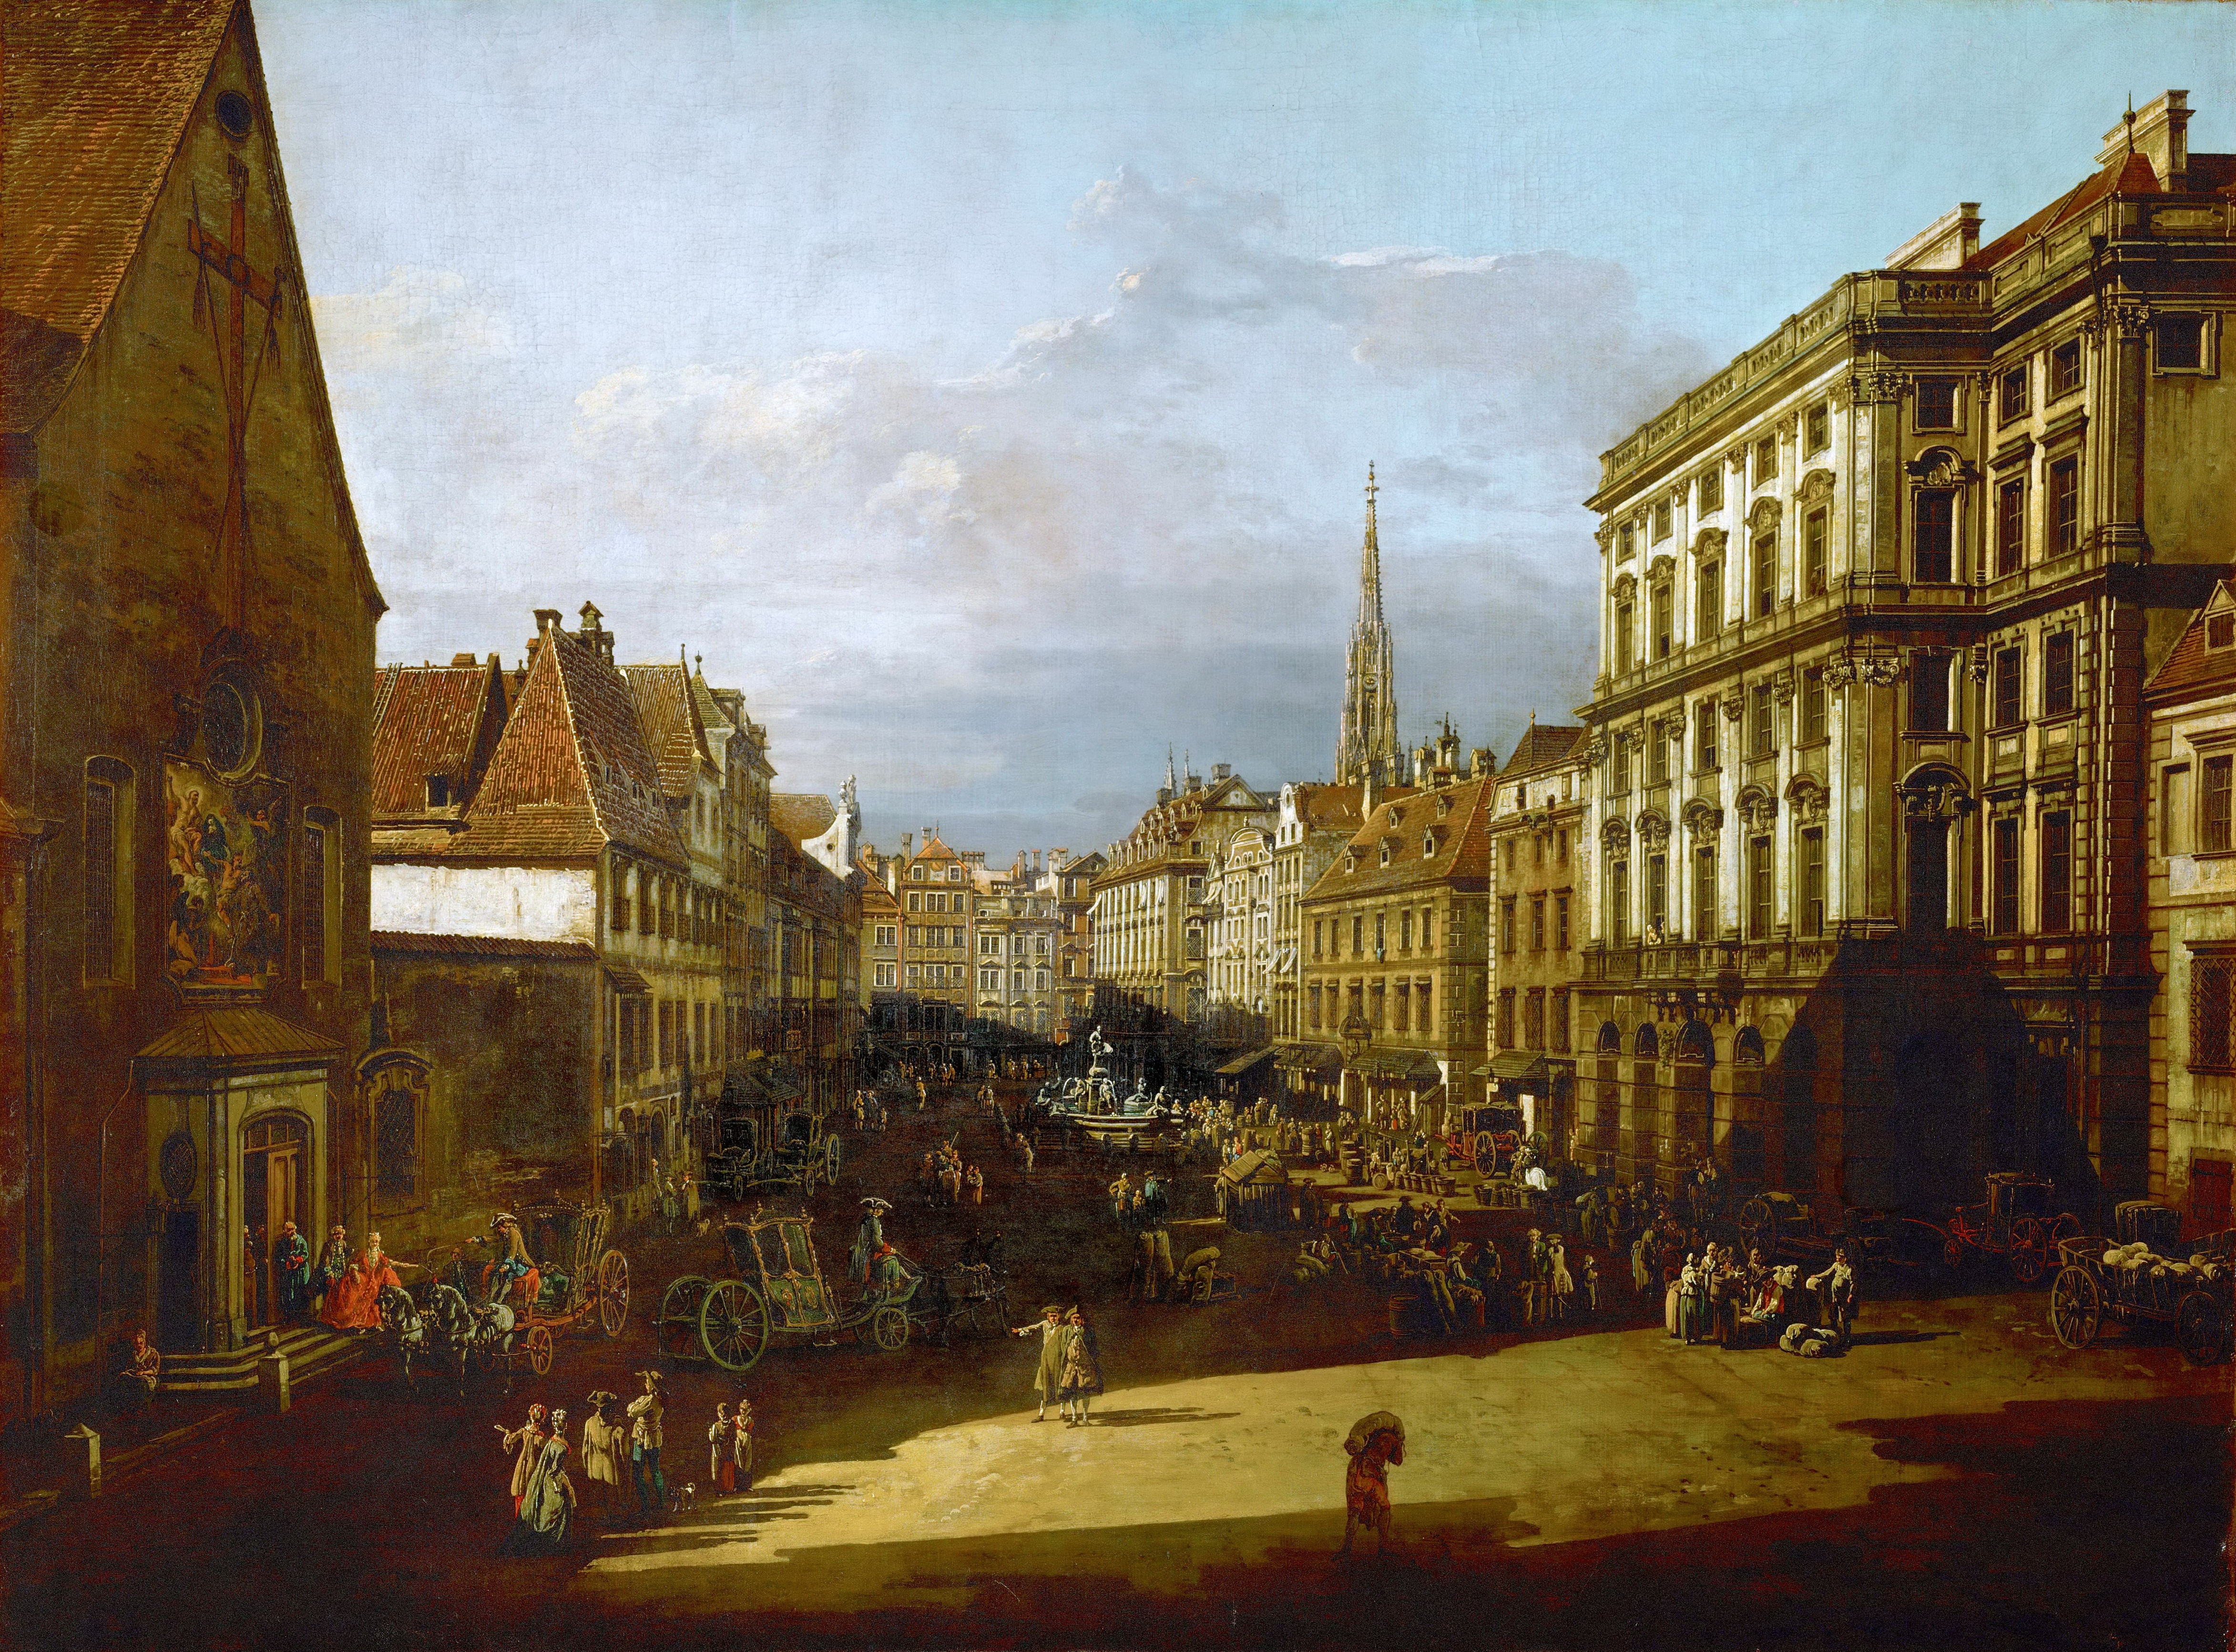 http://upload.wikimedia.org/wikipedia/commons/2/2d/Canaletto_%28I%29_034.jpg